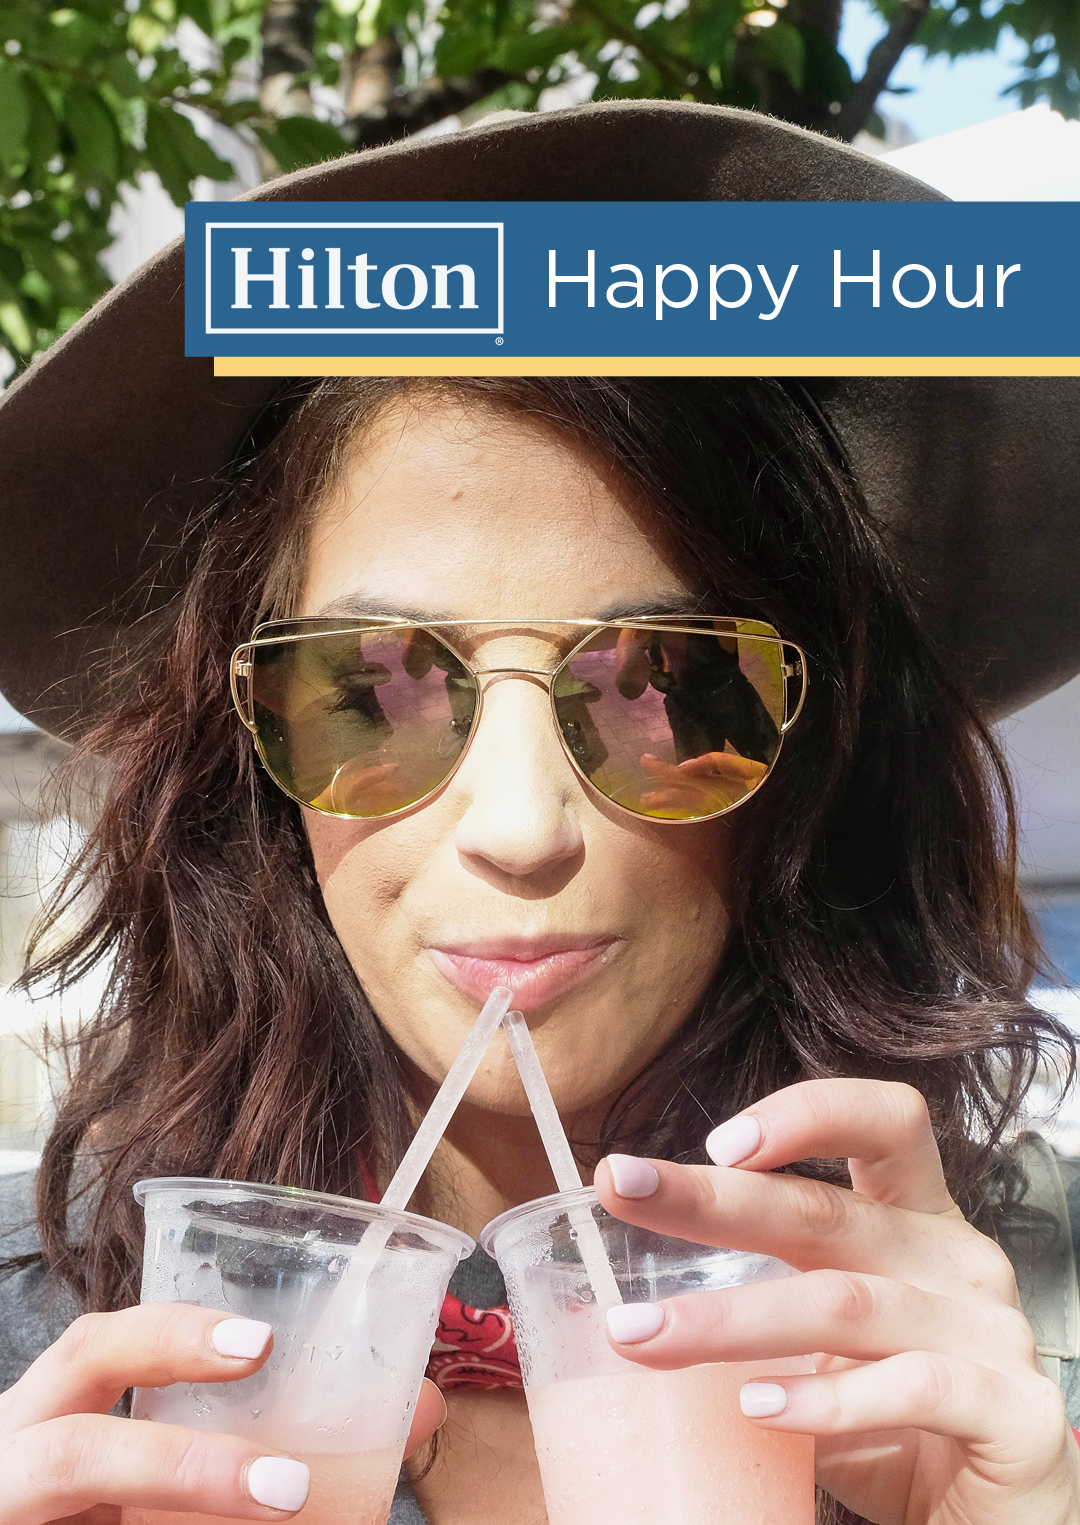 Hilton Happy Hour promo graphic